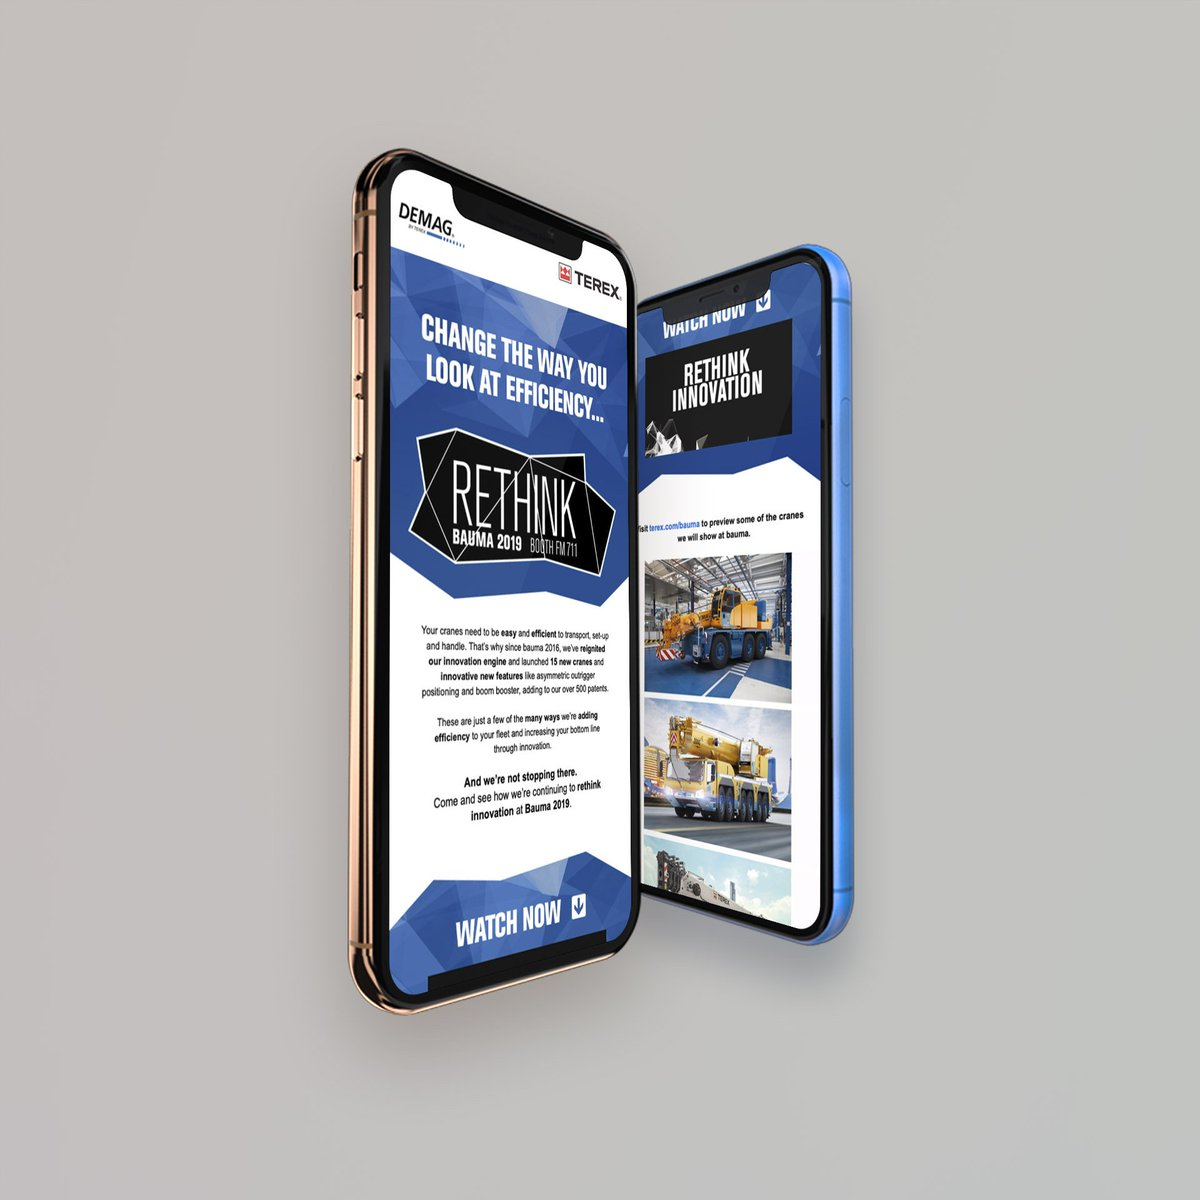 Going to @baumaOfficial? Our partner @terexcranes has a treat in store for visitors to their stand. How do we know? We're working with them on the awareness campaign leading up to the show.   #brand #design #rethinkinnovation #bauma2019